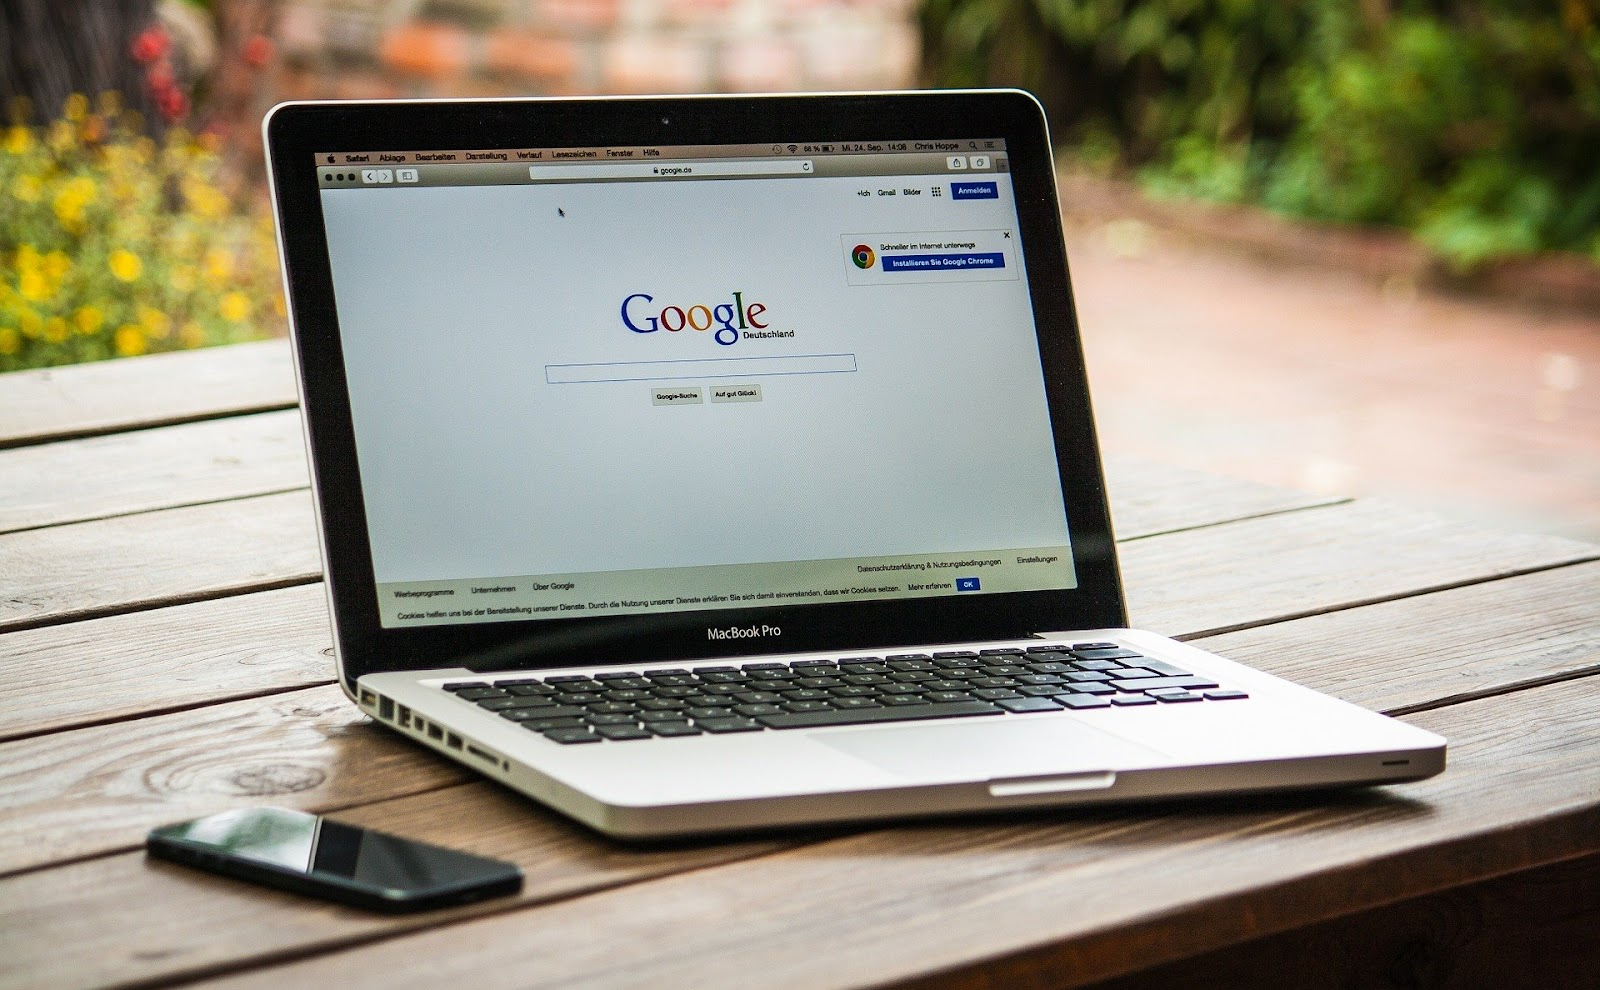 Good SEO - Maximize your website's potential for search engine optimization